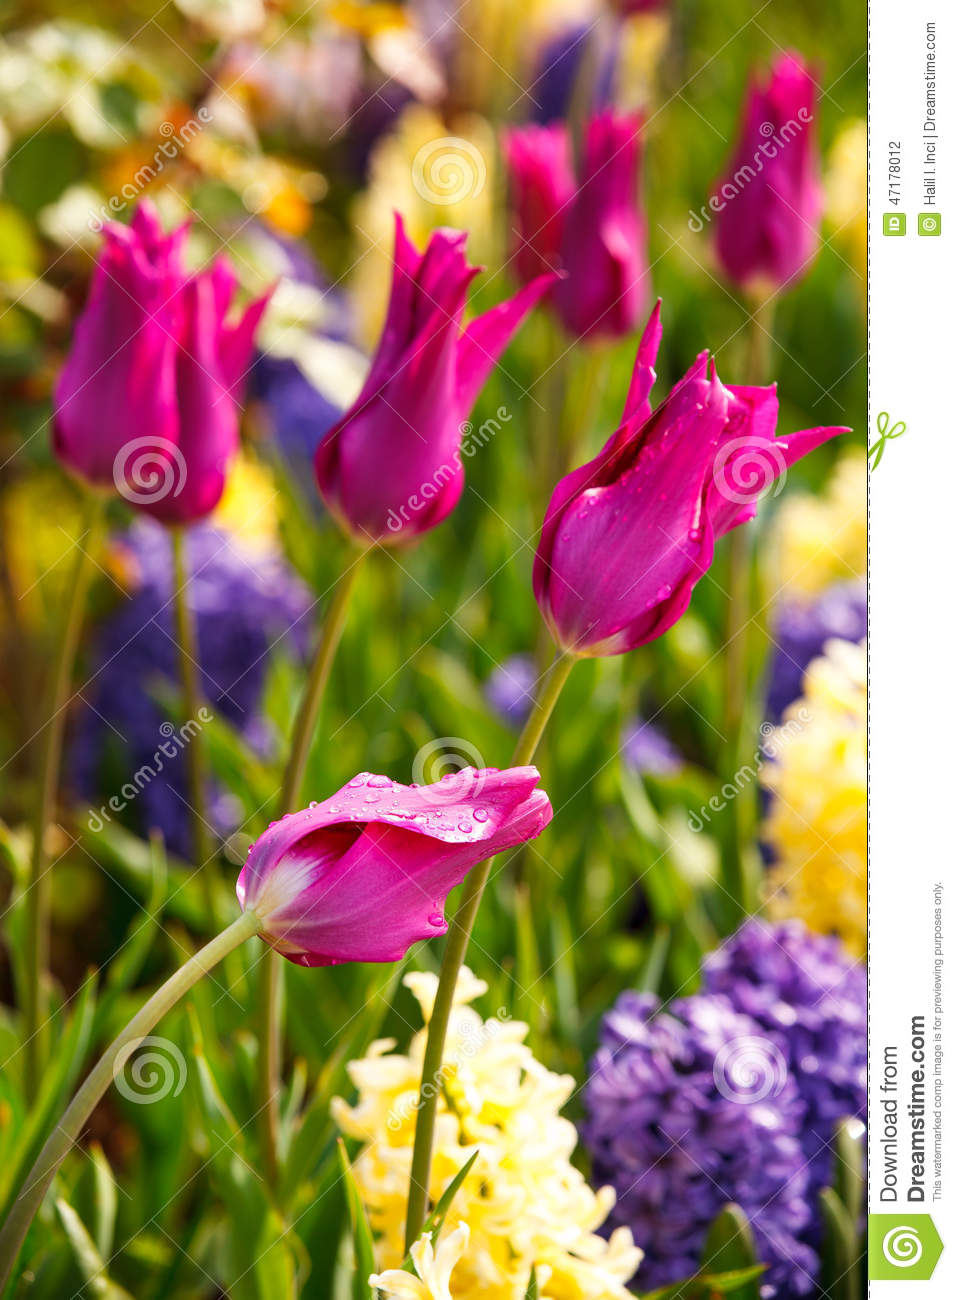 Garden Flowers spring garden flowers stock photo - image: 47178012